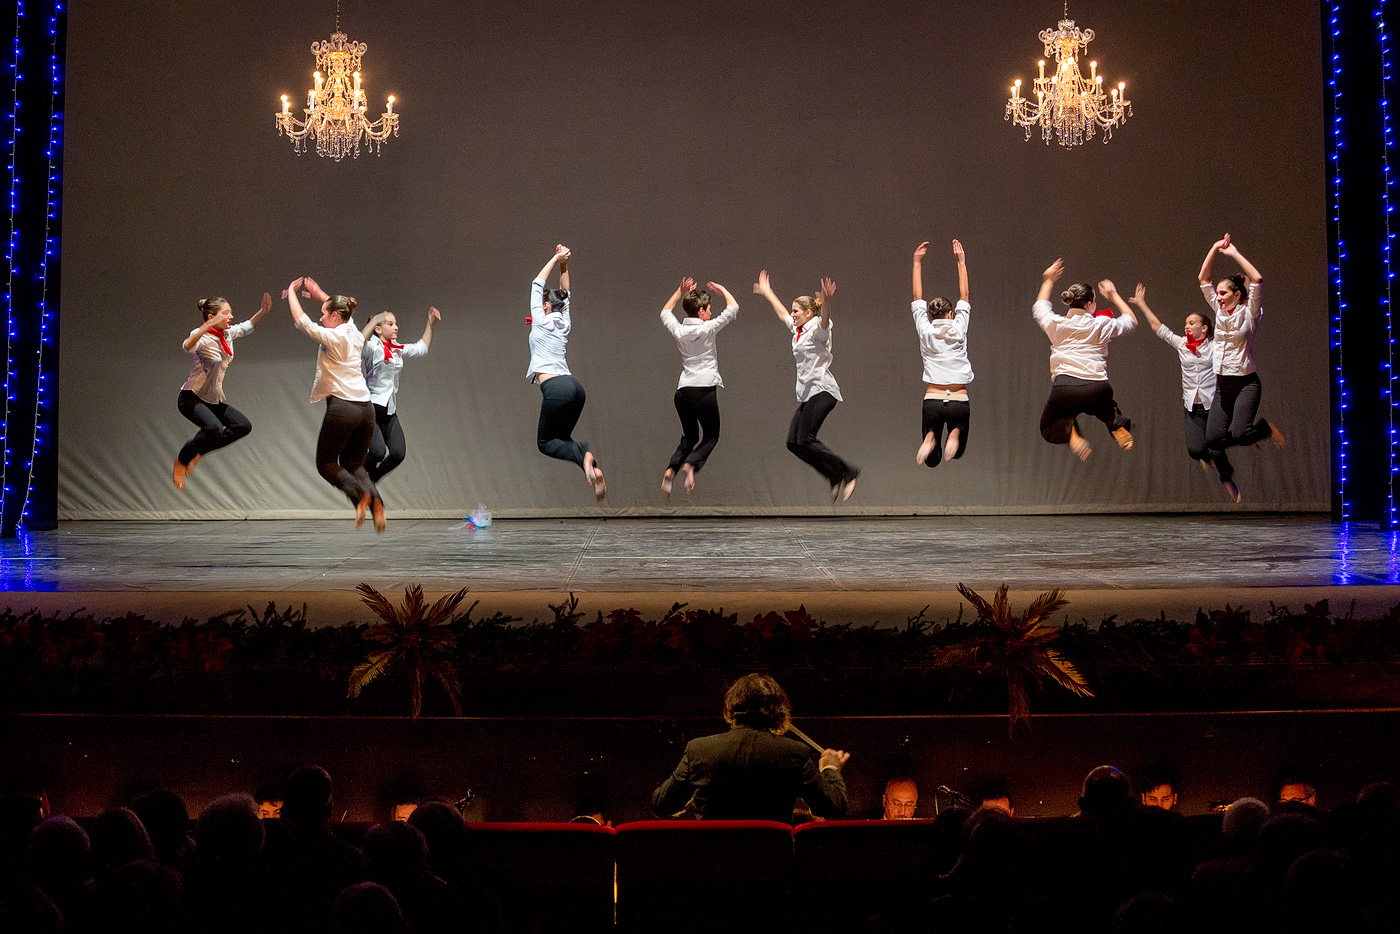 <div class='foto_id' style='display:none'></div>Dance on Theater ©